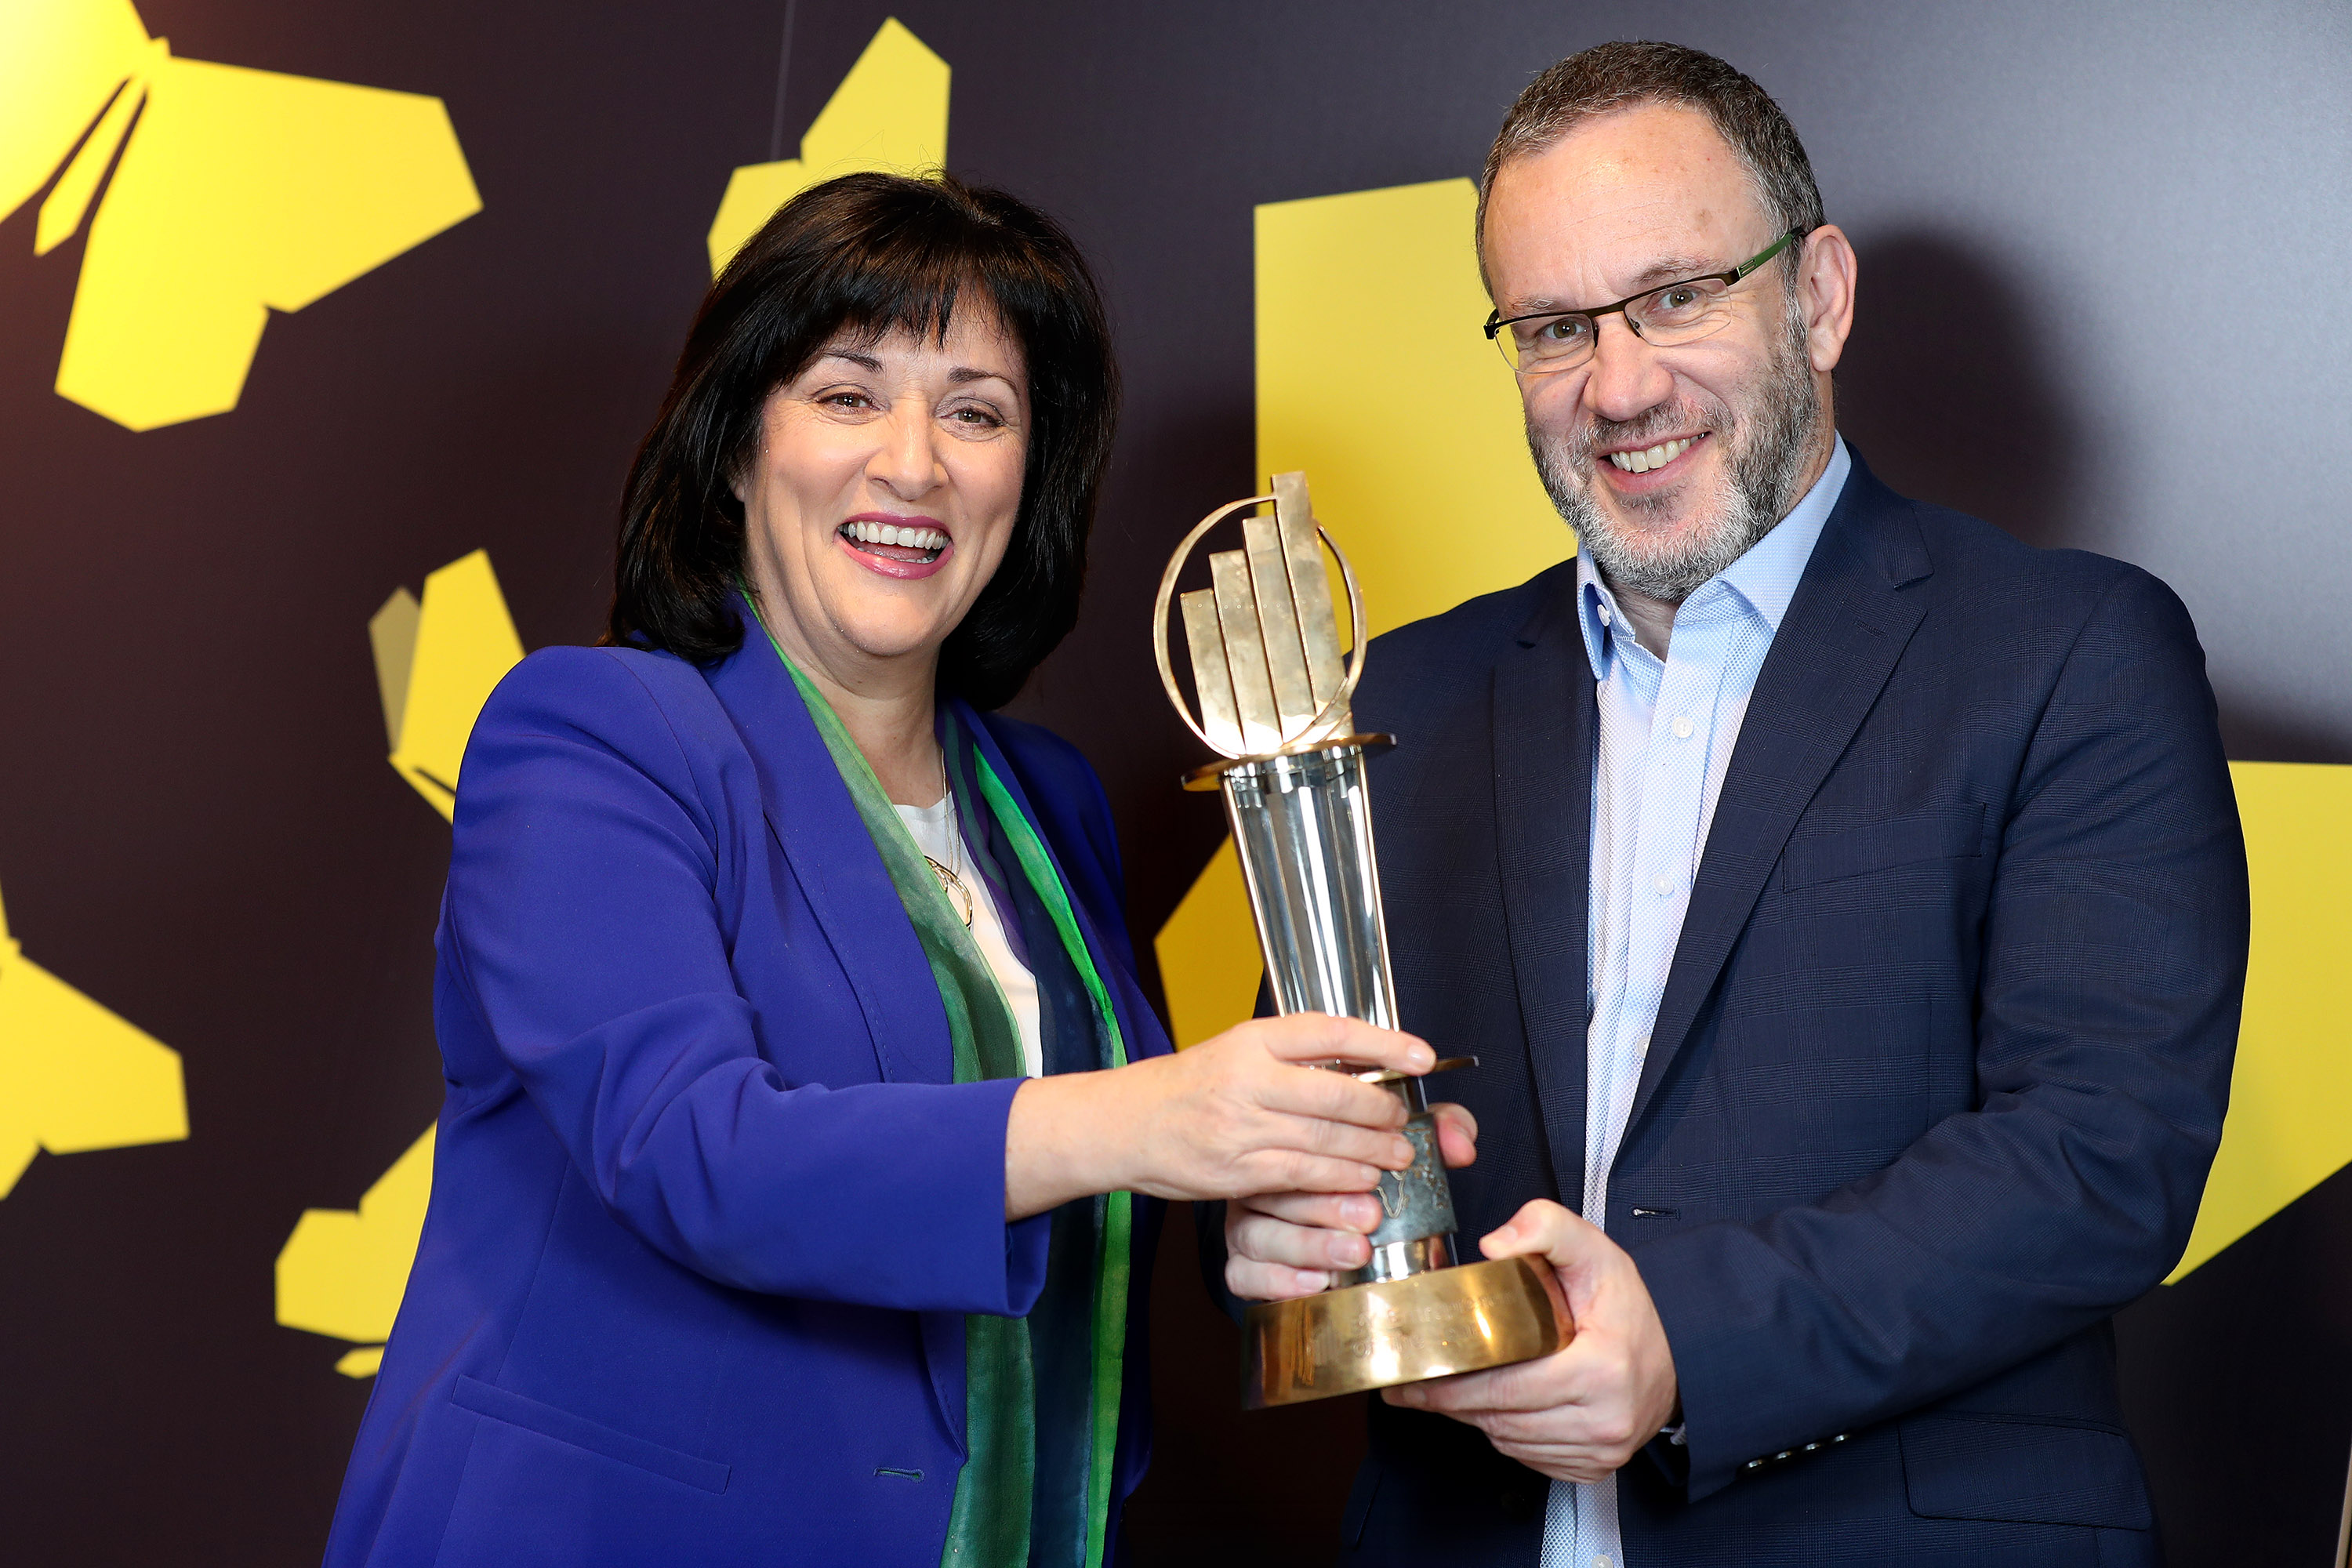 Offaly-based Donnacha Hurley among EY Entrepreneur Of The Year™ finalists